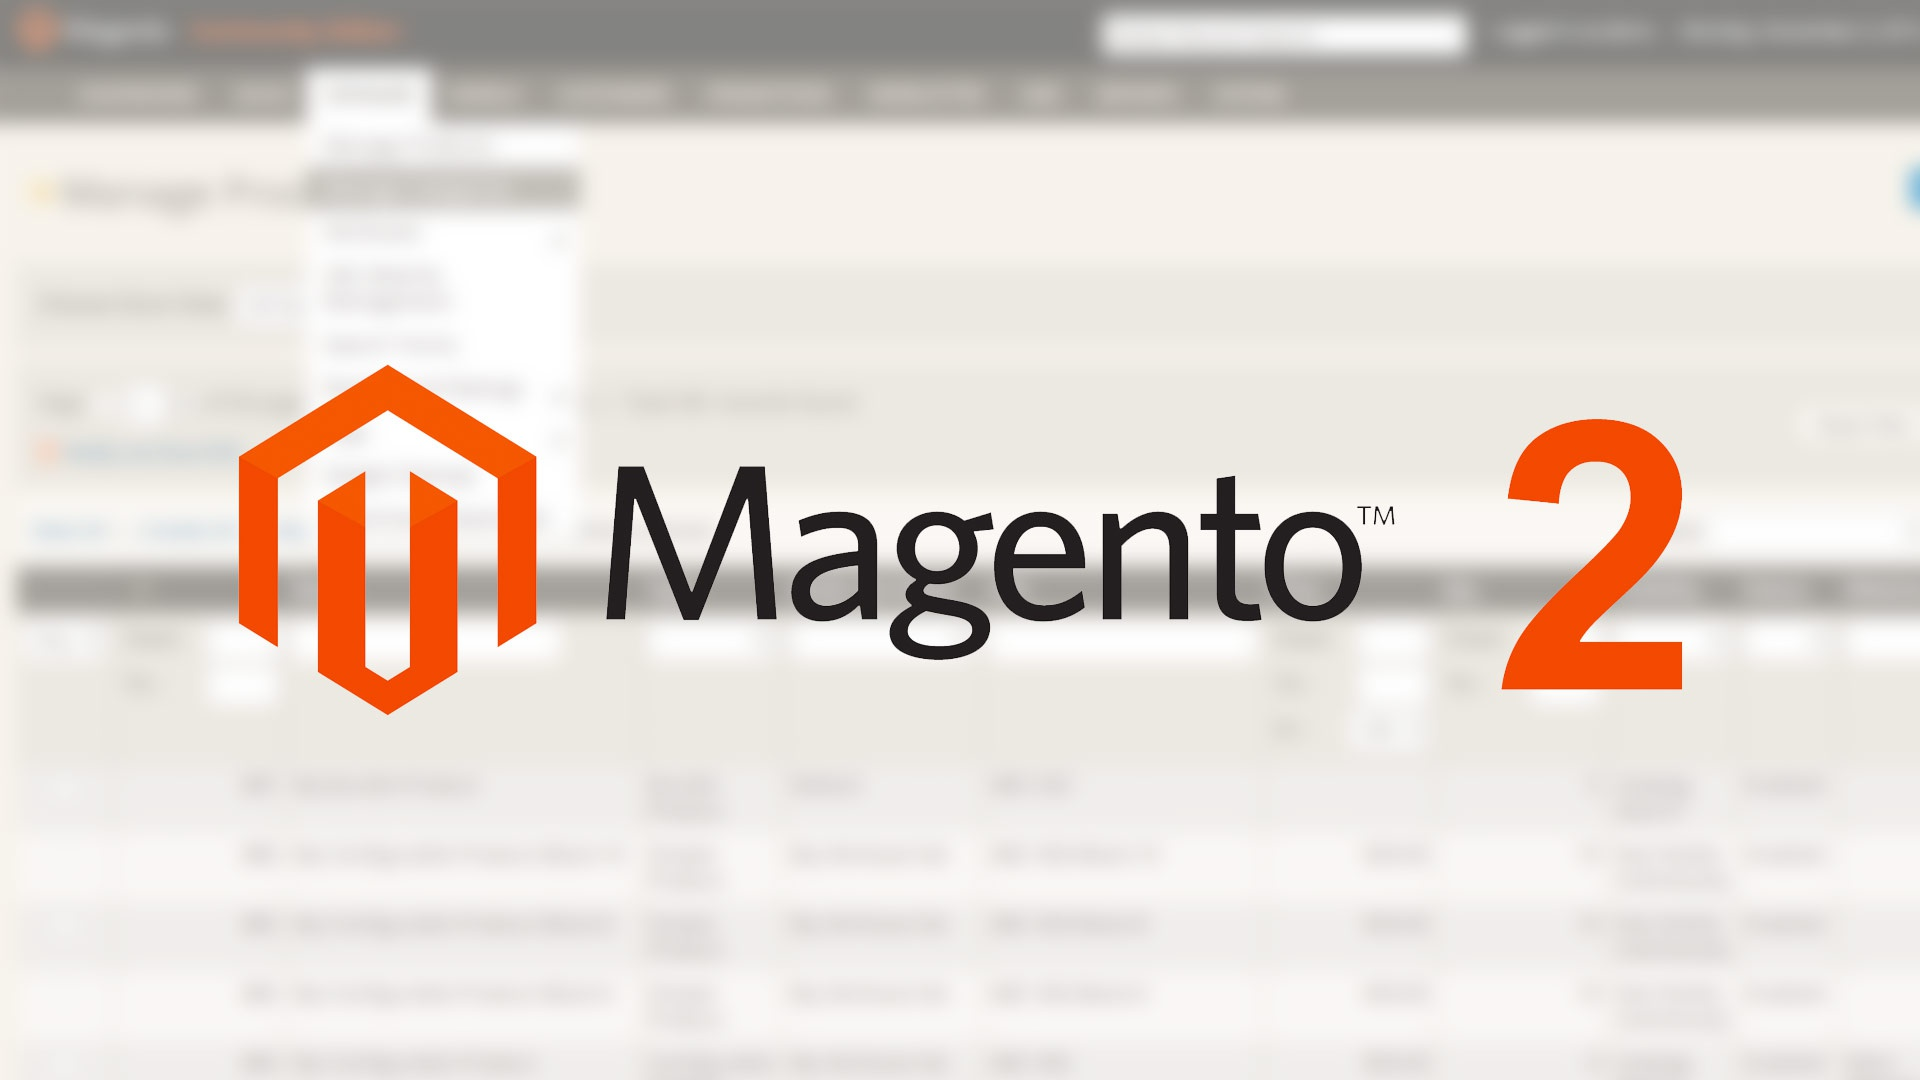 Next 5 Magento Development Companies